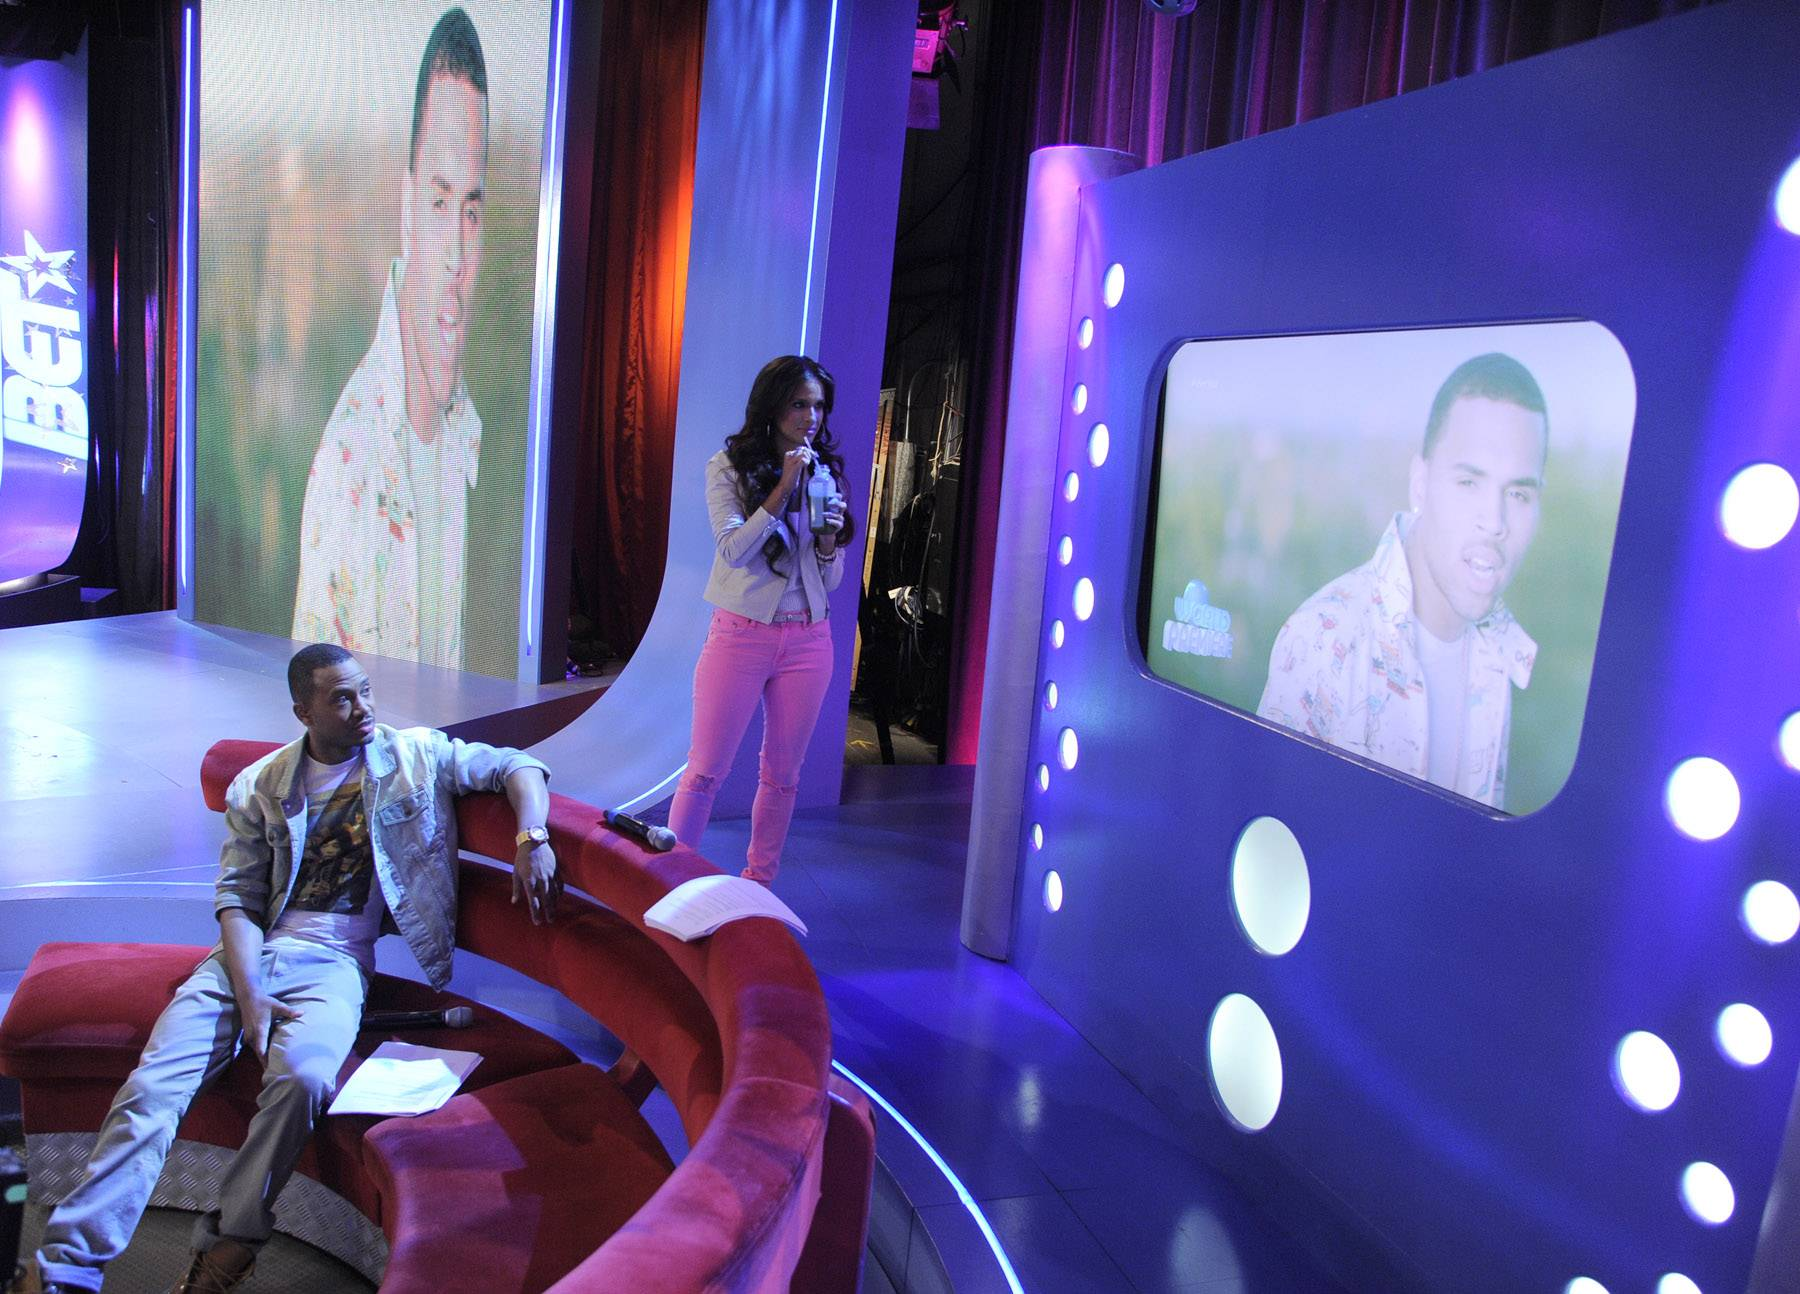 """The big screen - Terrence J and Rocsi Diaz check out the Nicki Minaj's """"Right By My Side"""" video featuring Chris Brown at 106 & Park, May 16, 2012. (Photo: John Ricard / BET)"""